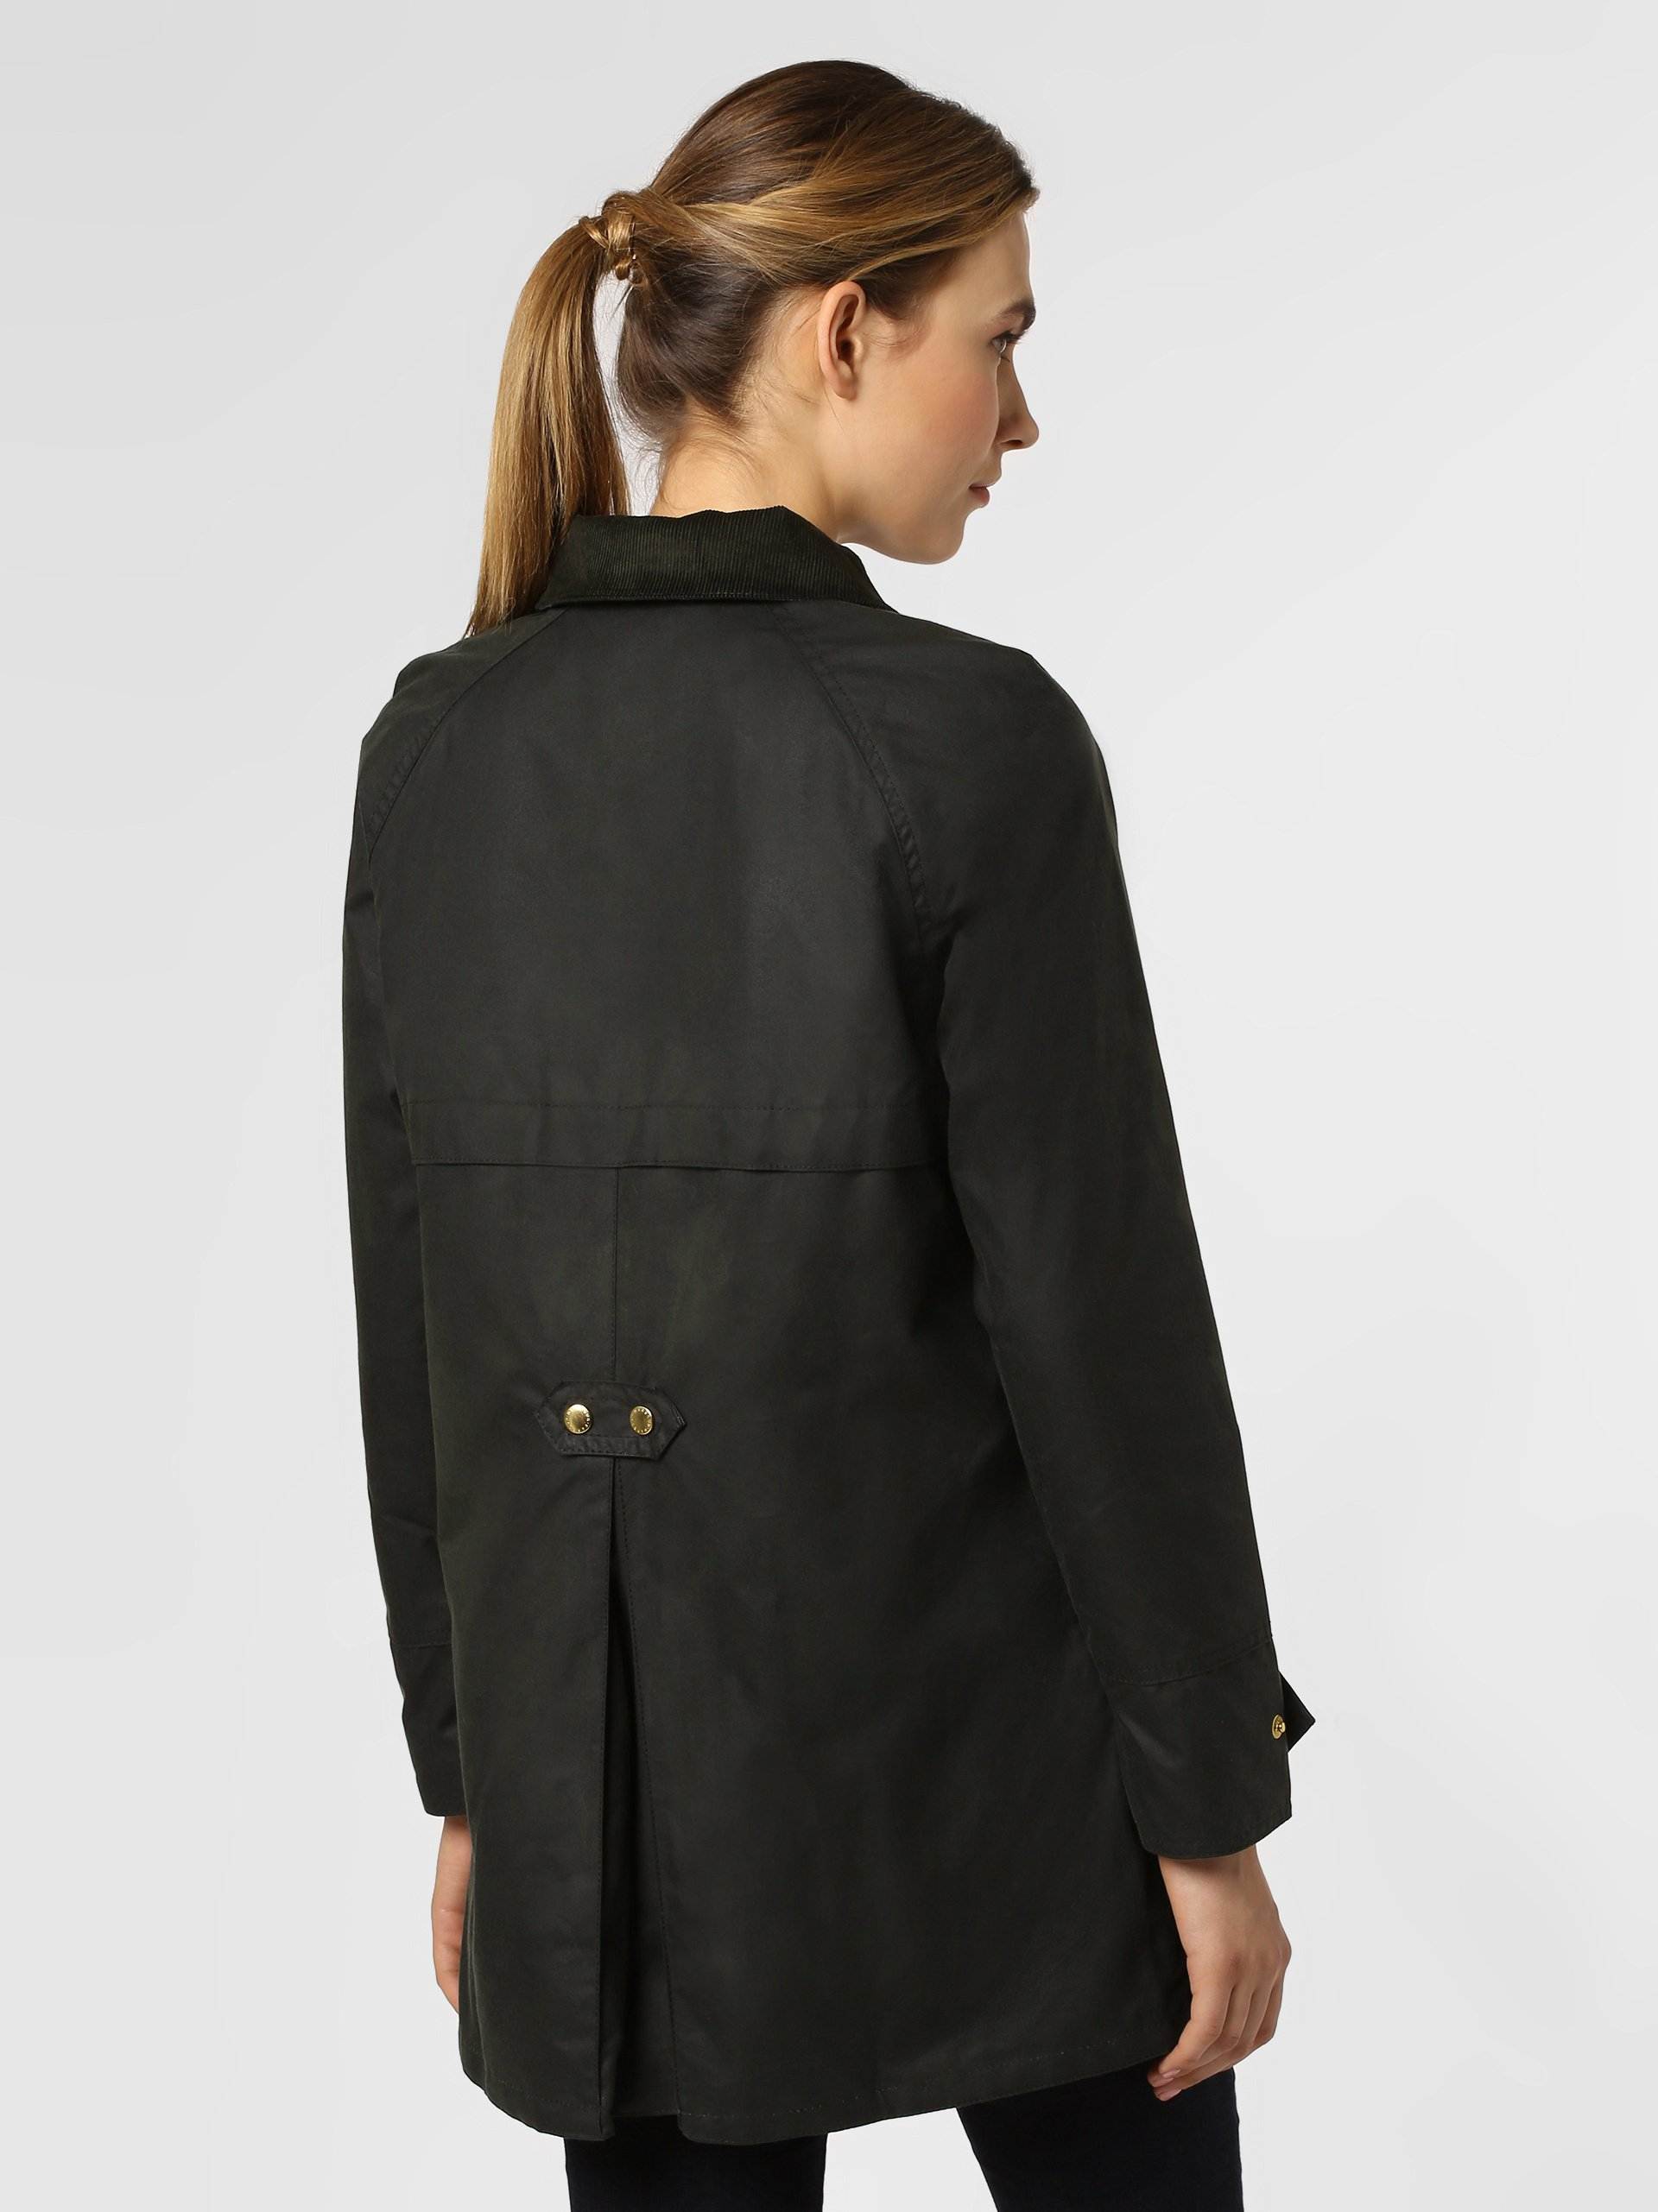 Barbour Damen Jacke - Lowmond